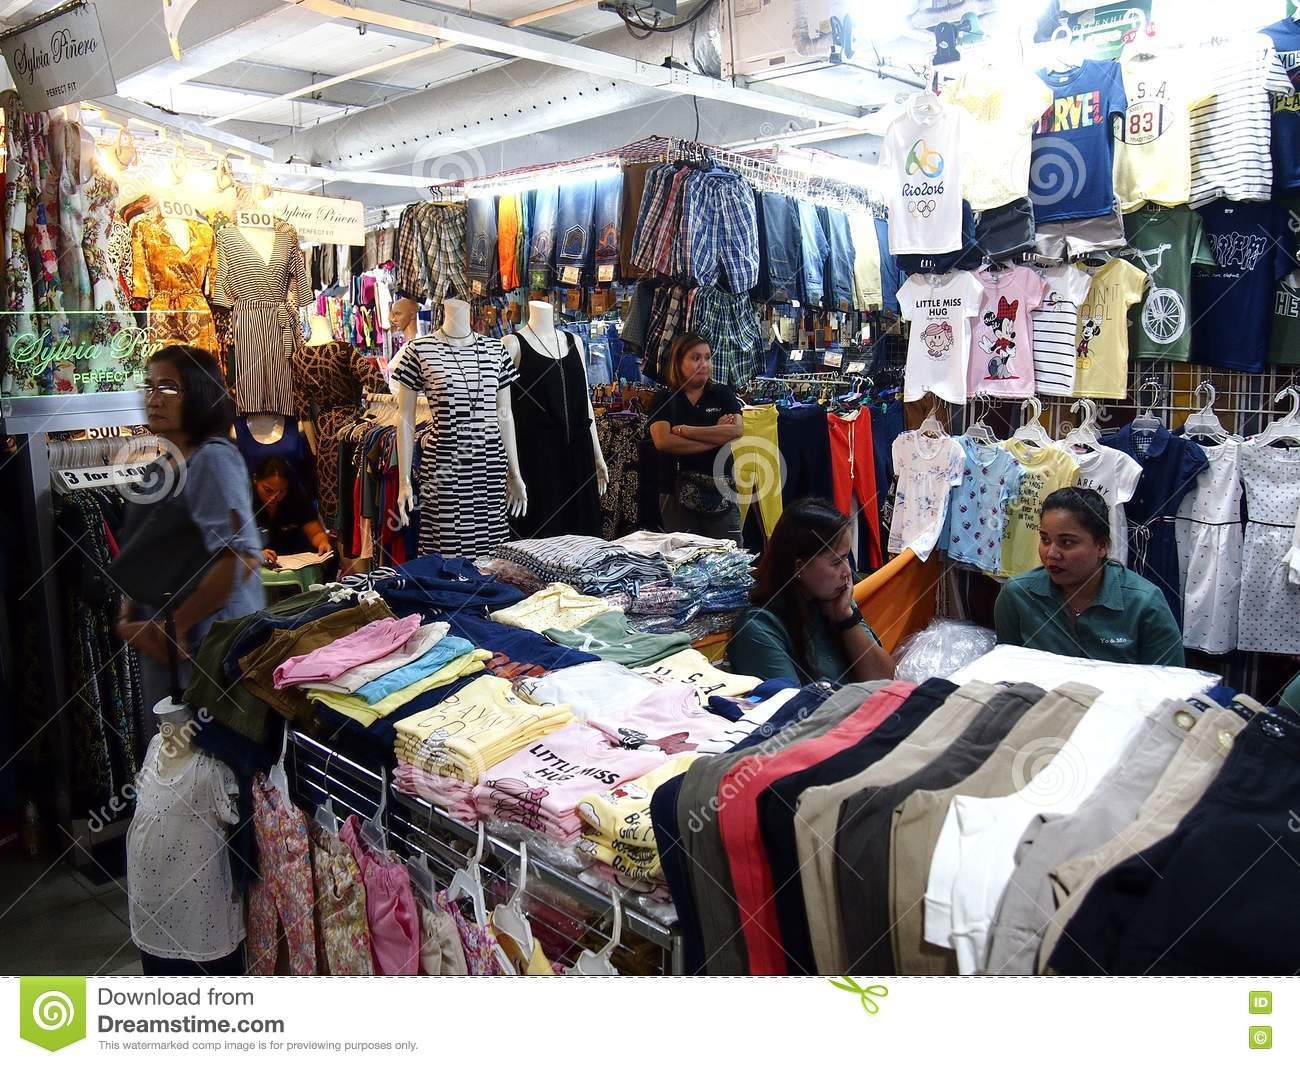 Best Philippines Shopping: See reviews and photos of shops, malls & outlets in Philippines on TripAdvisor.